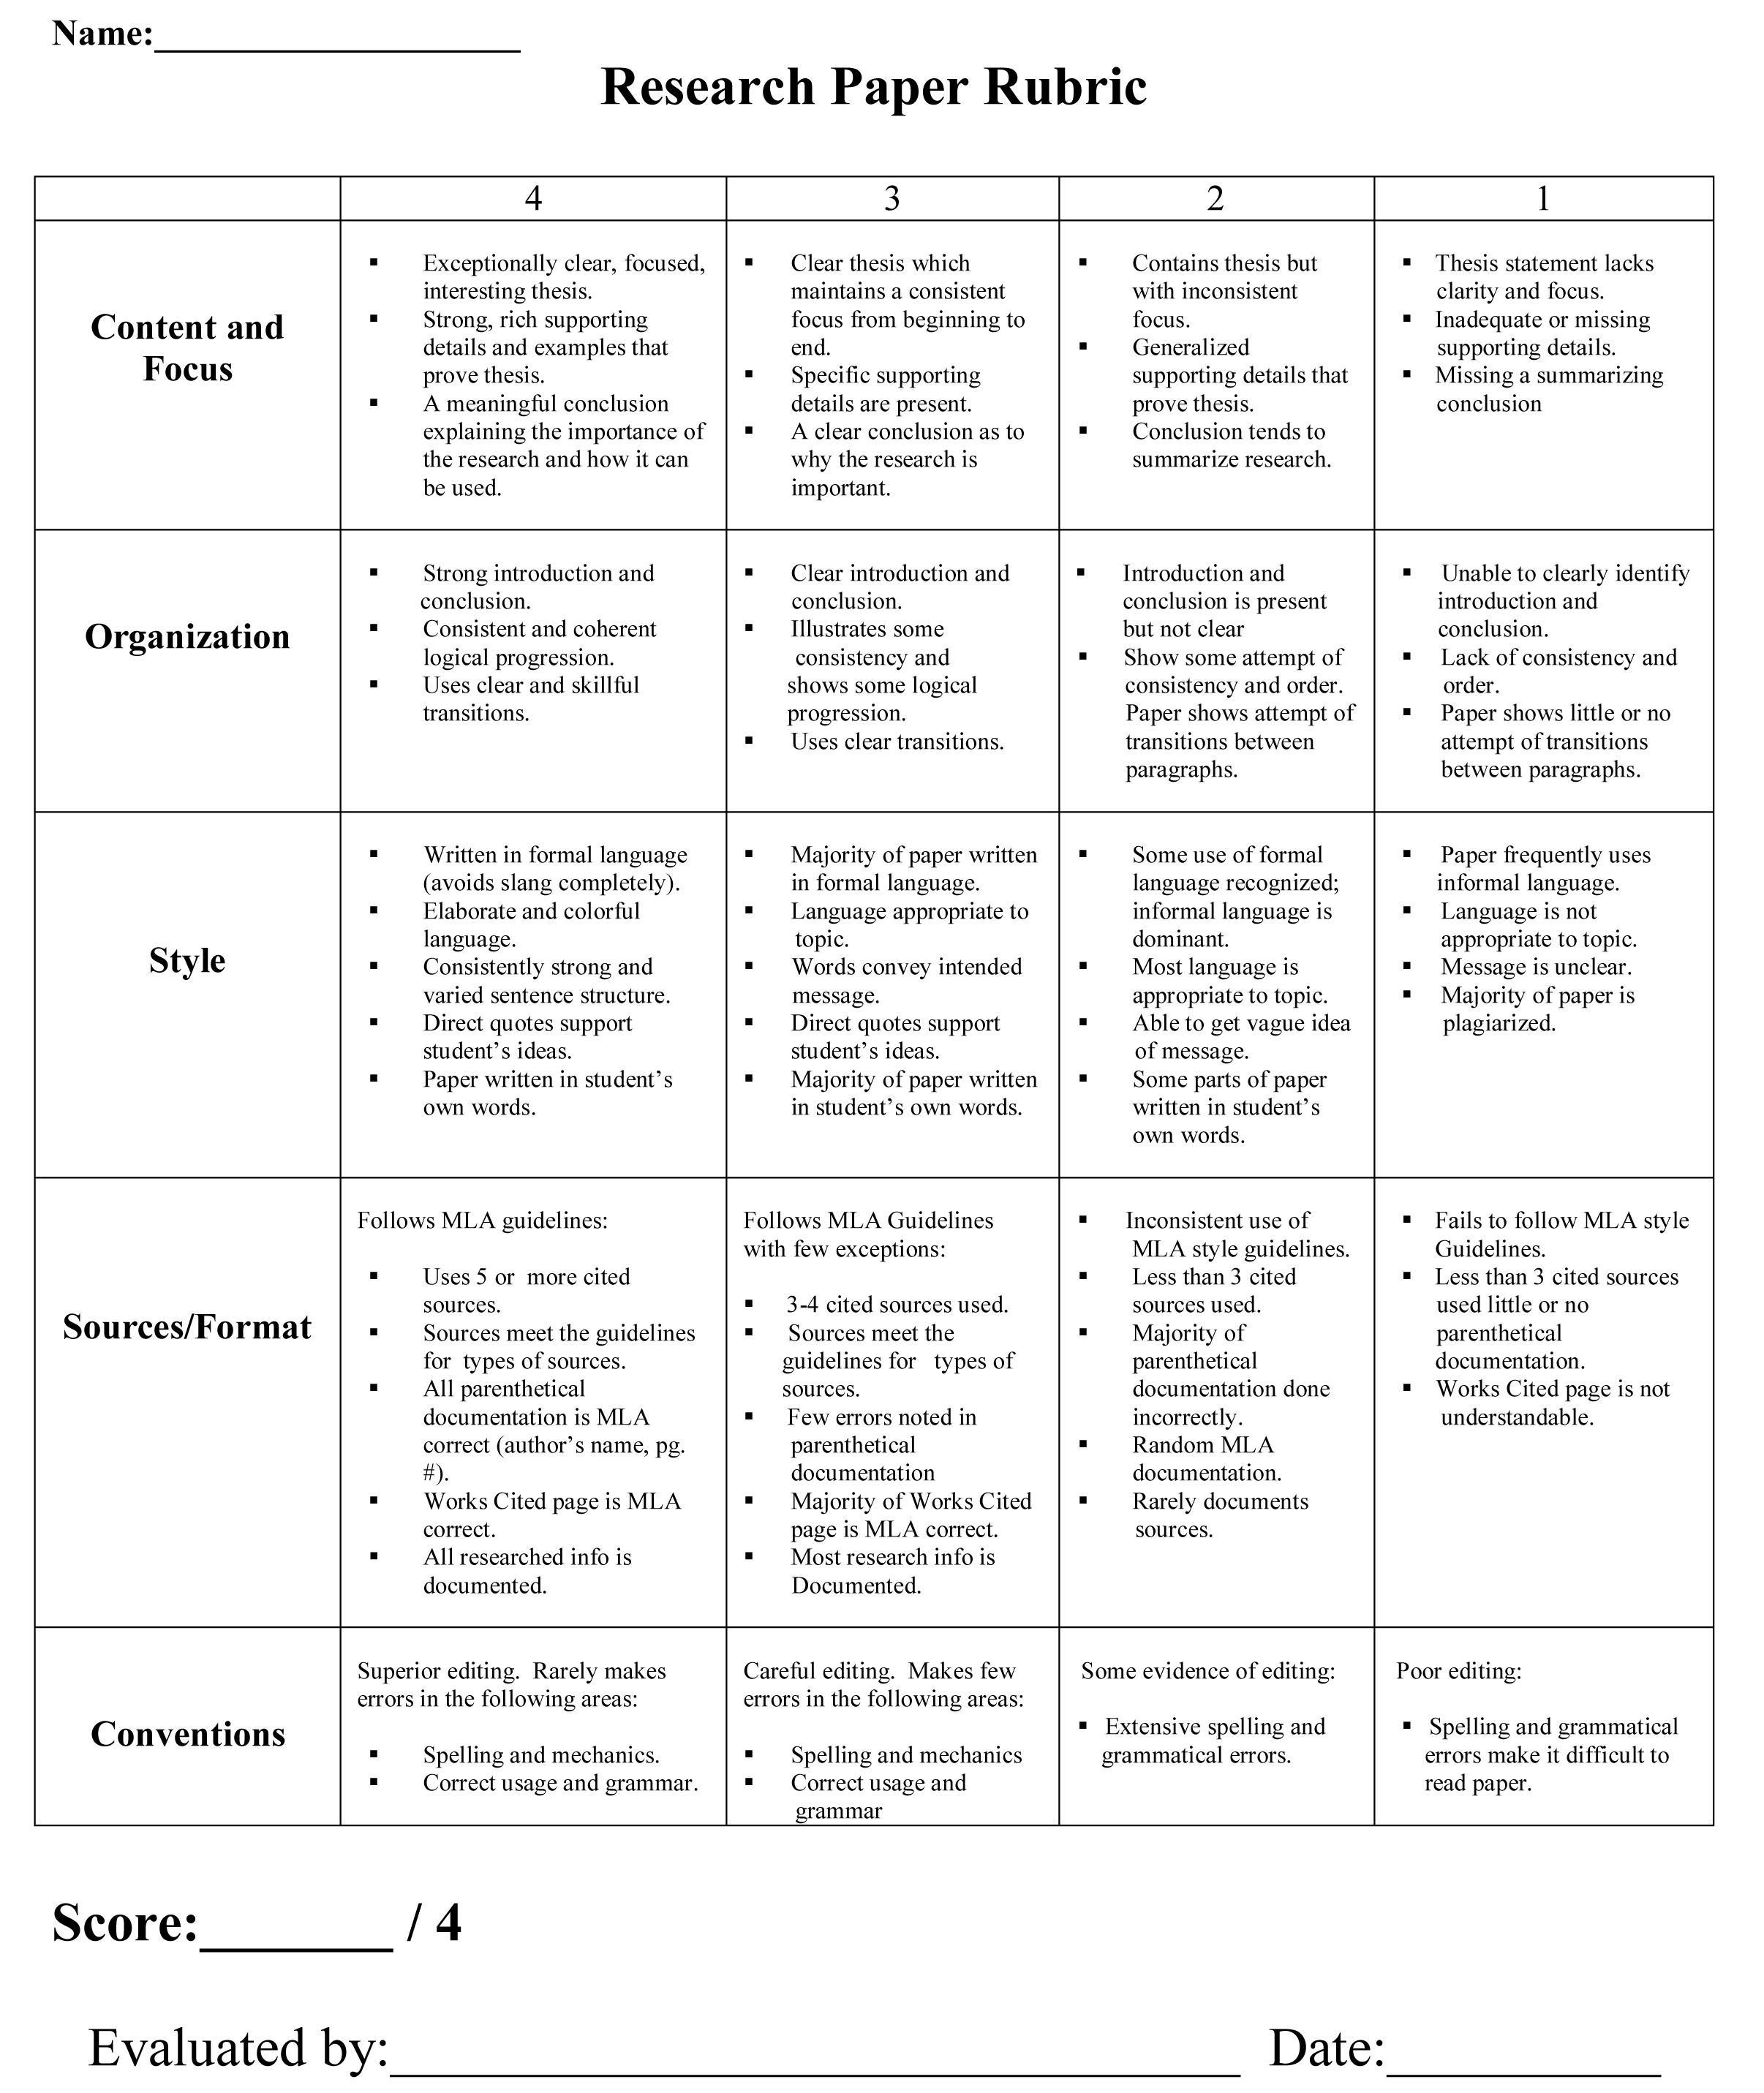 017 Research Paper Rubric Free Sample Online Stirring Papers Plagiarism Checker Psychology Download Full